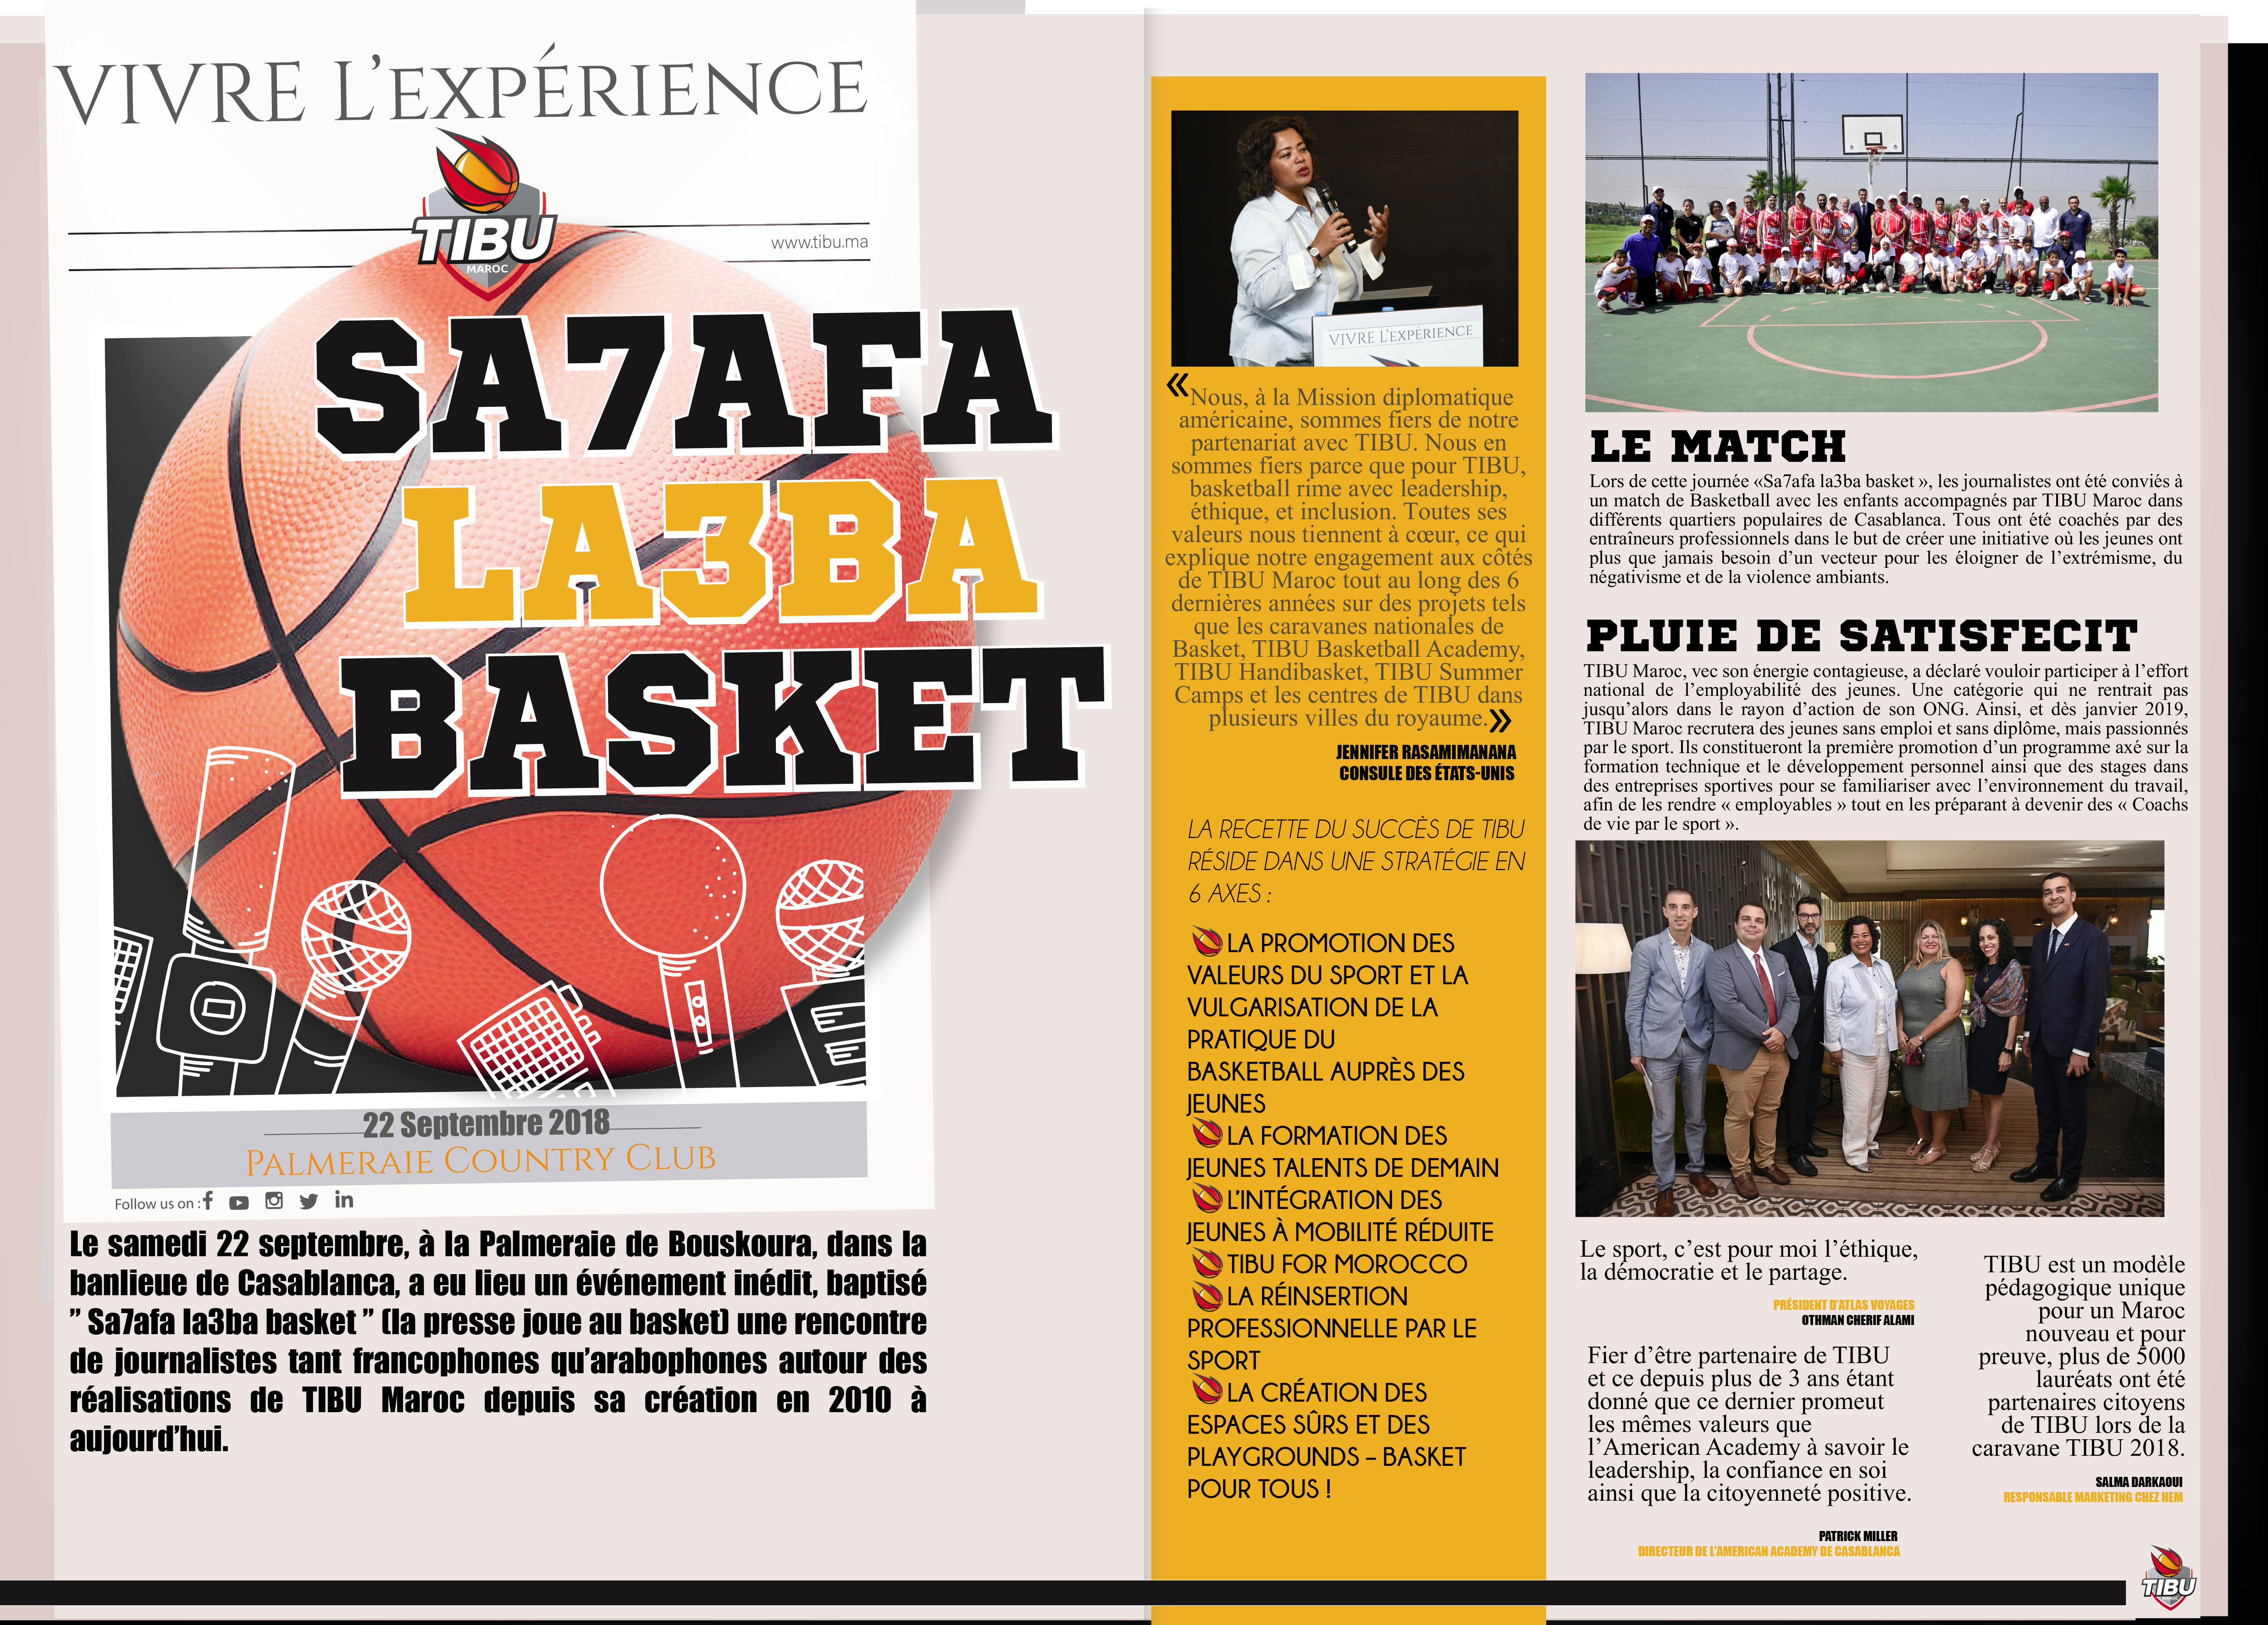 American Academy Casablanca: A proud partner with TIBU Maroc for three years now.   Continuing a successful four year relationship with the US Embassy as well the US Consulate in Morocco, the TIBU association was back again with the organization of a Basket Ball tournament gathering  journalists.